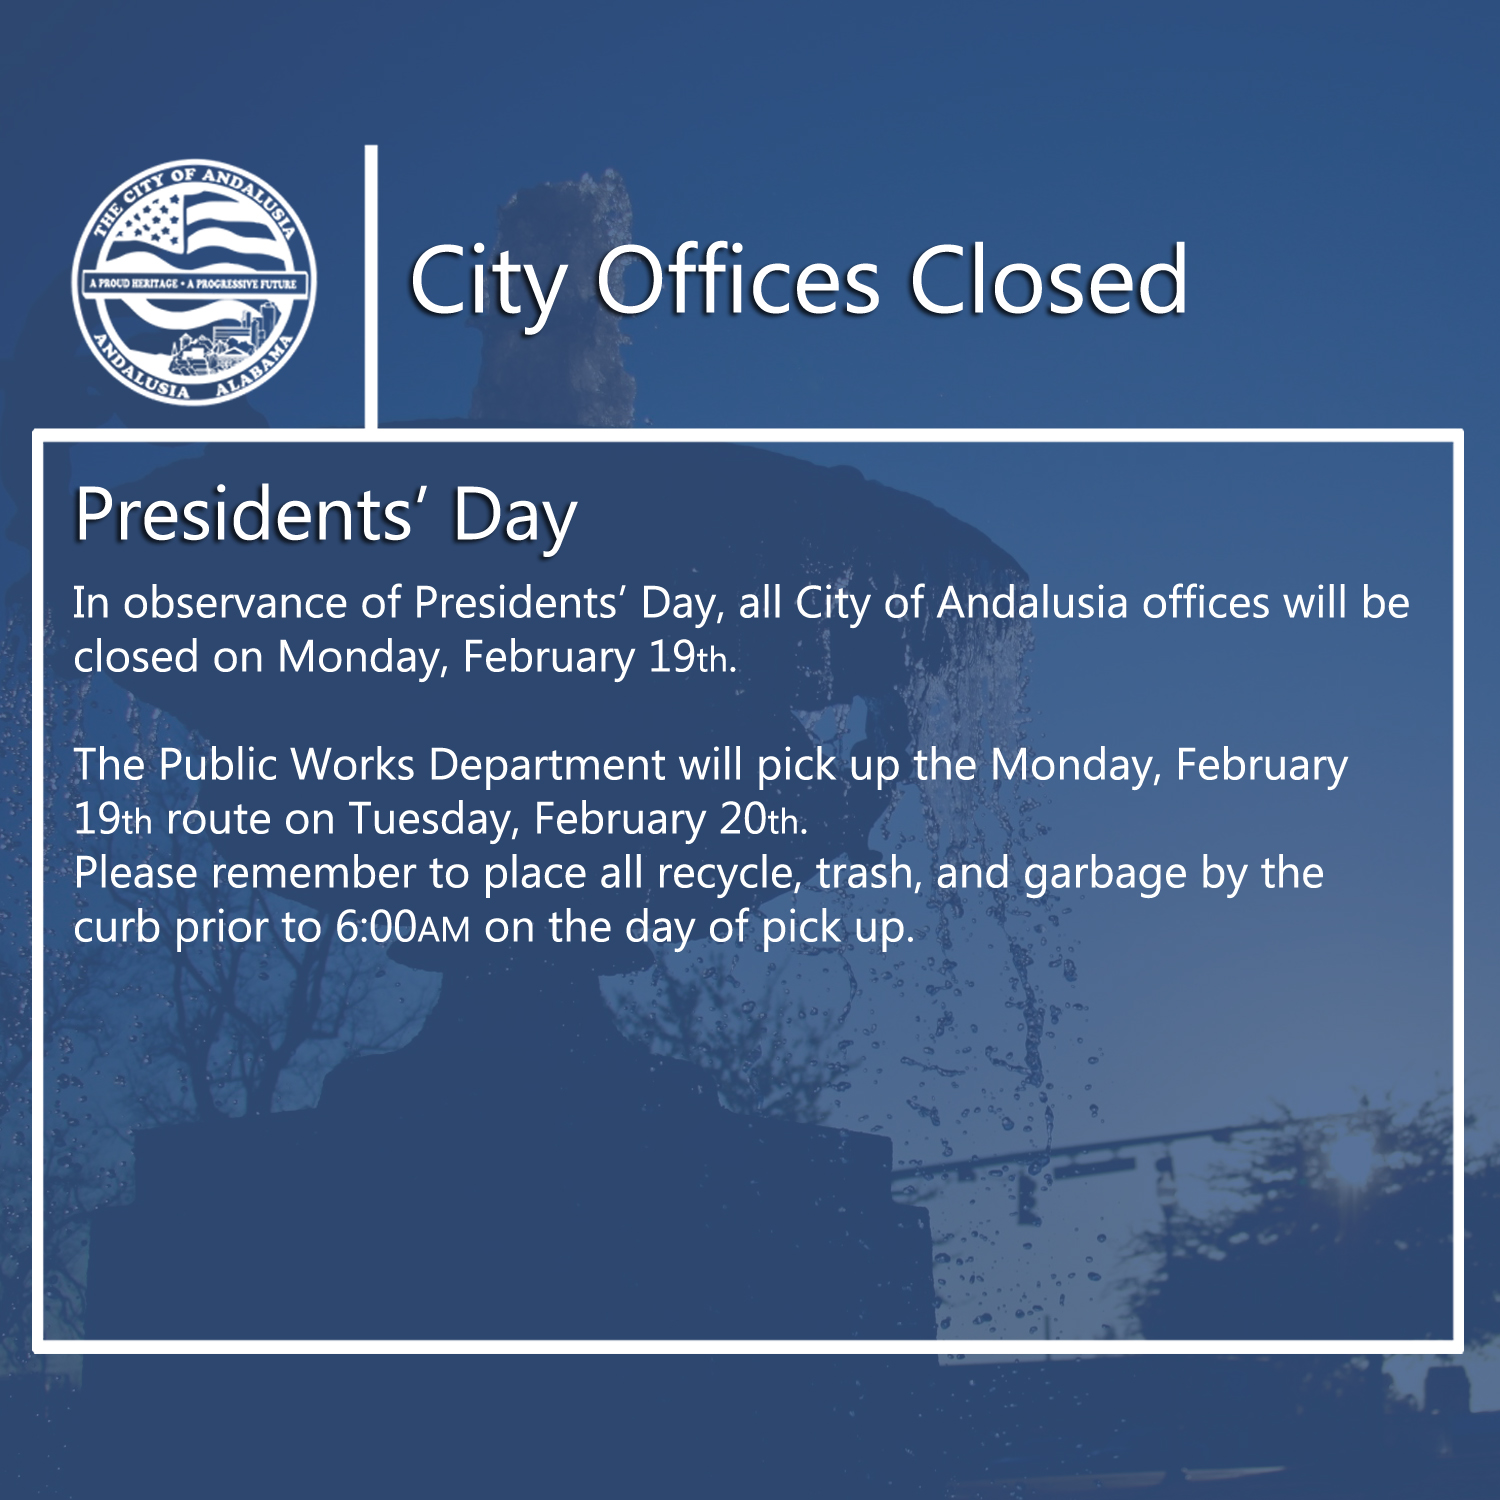 Facebook - City Offices Closed-Presidents Day.jpg